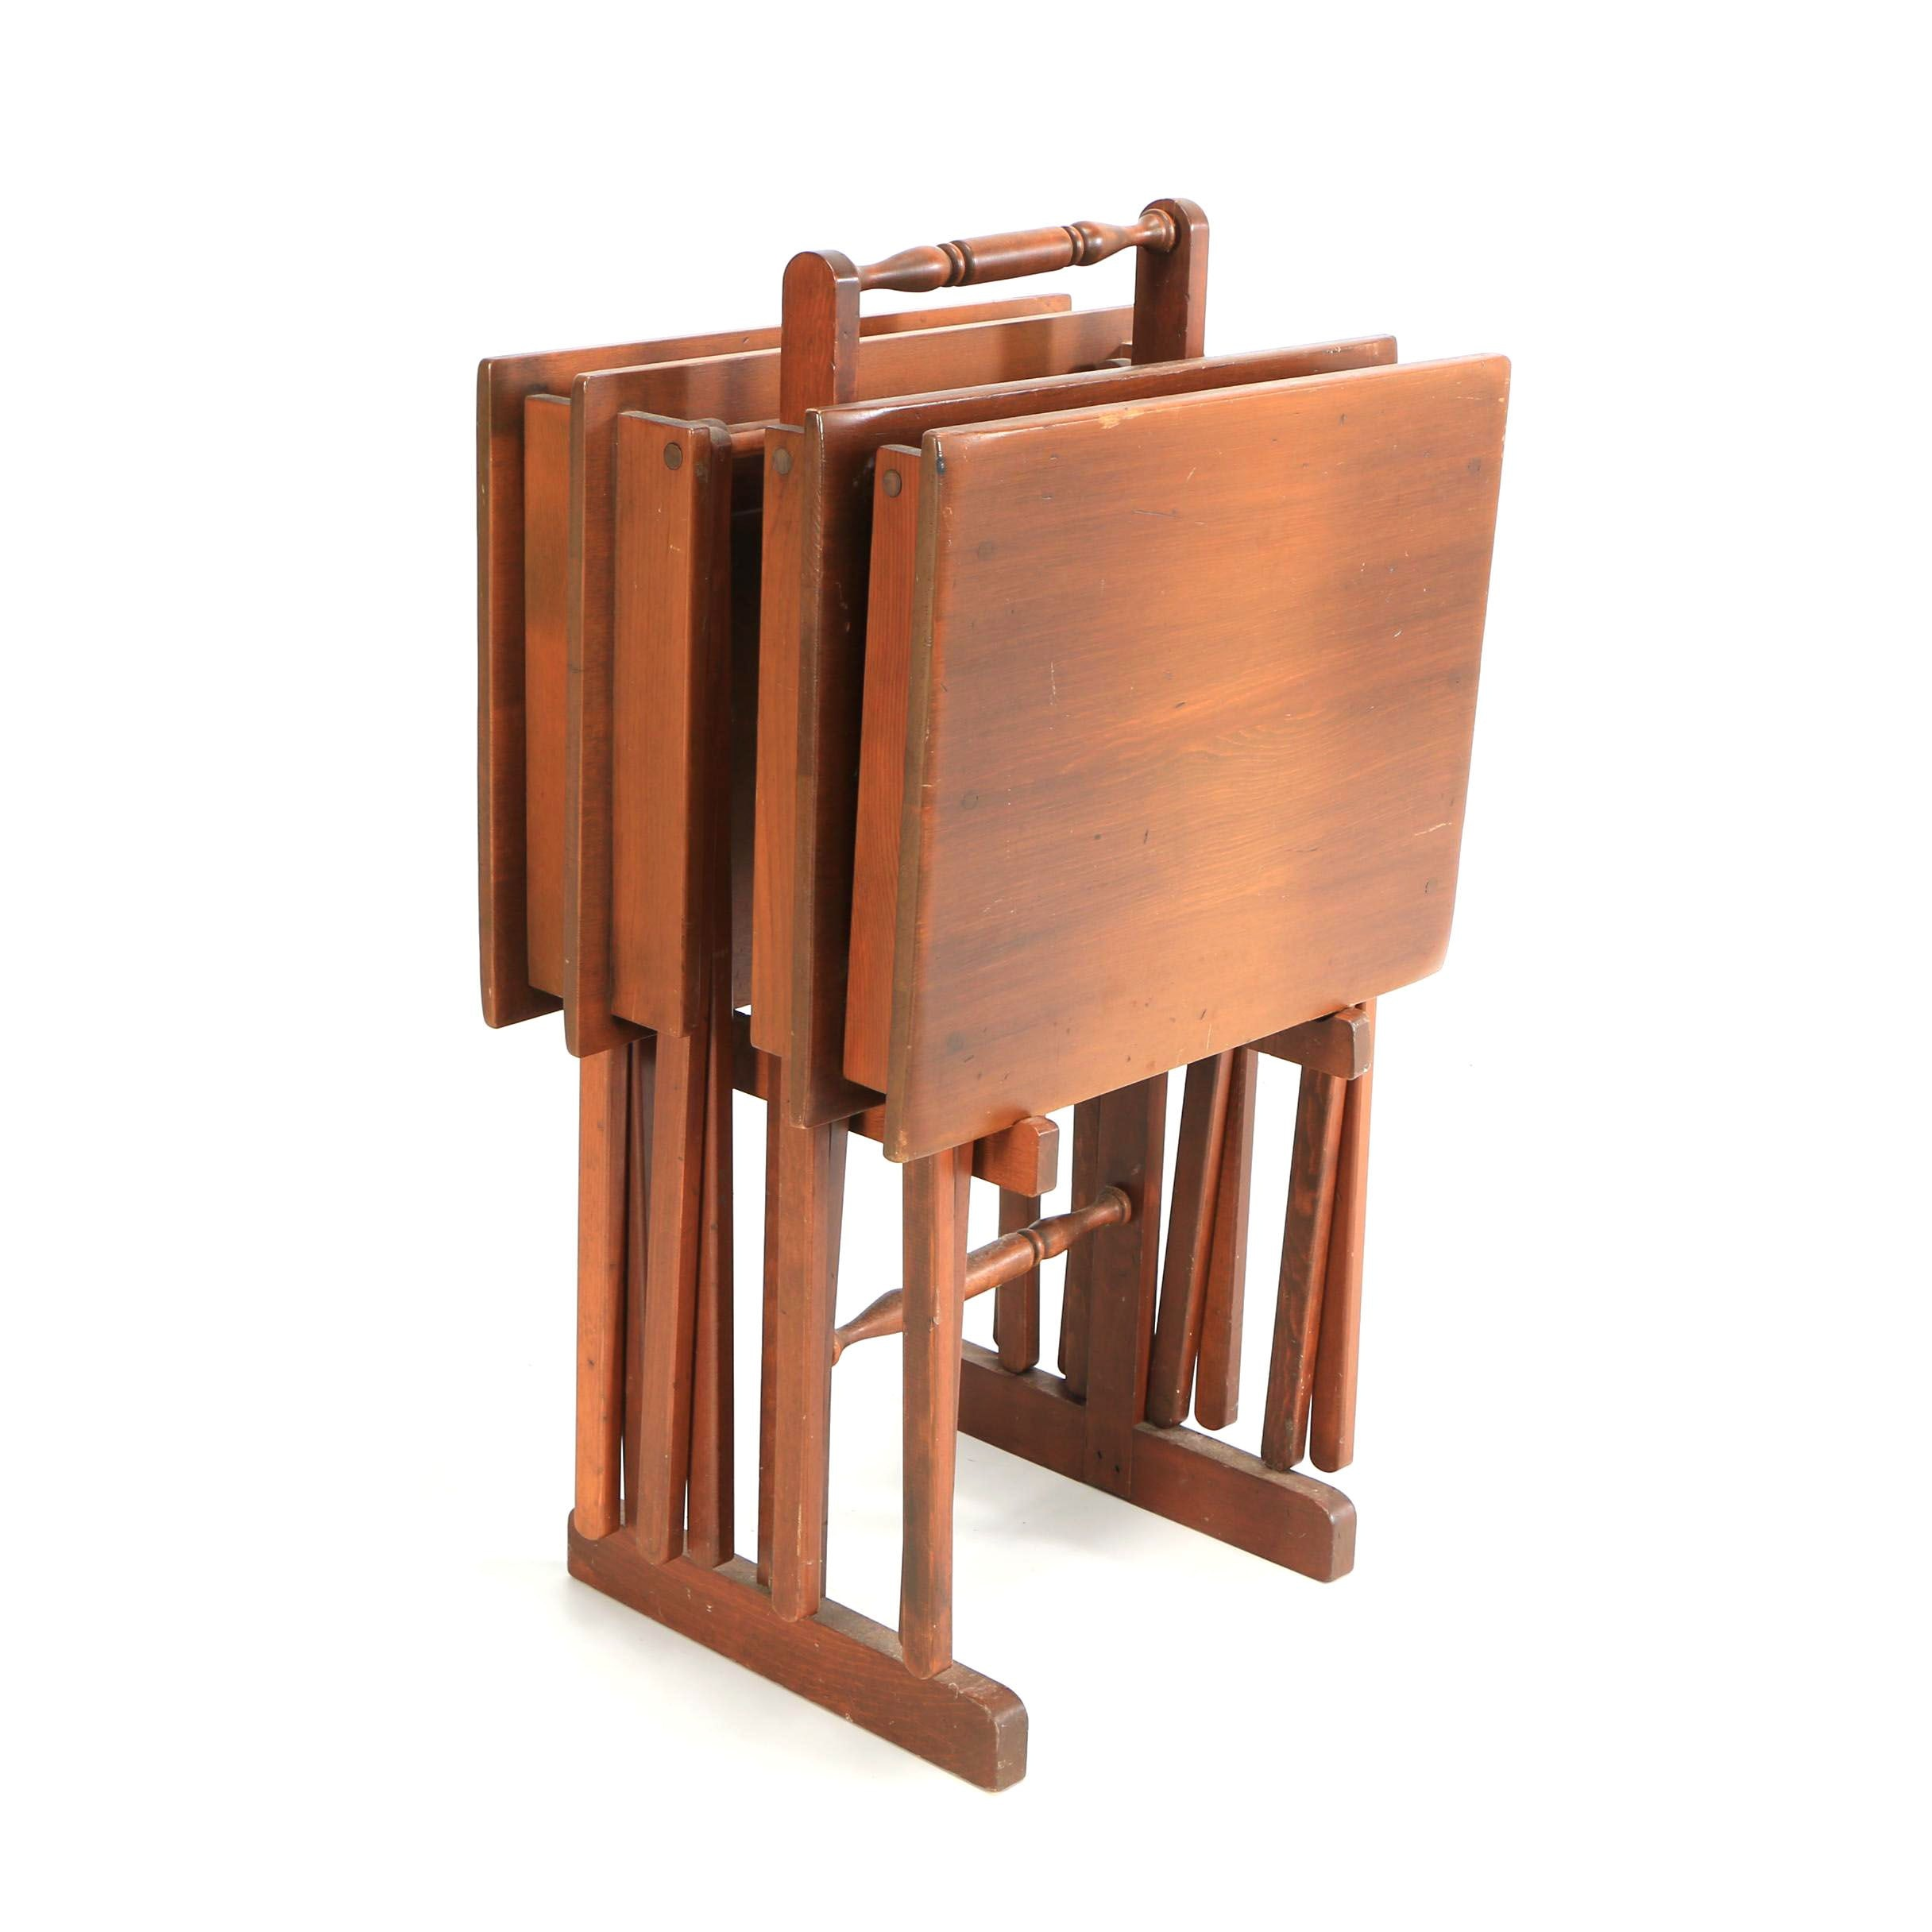 Wooden Tray Tables on Stand